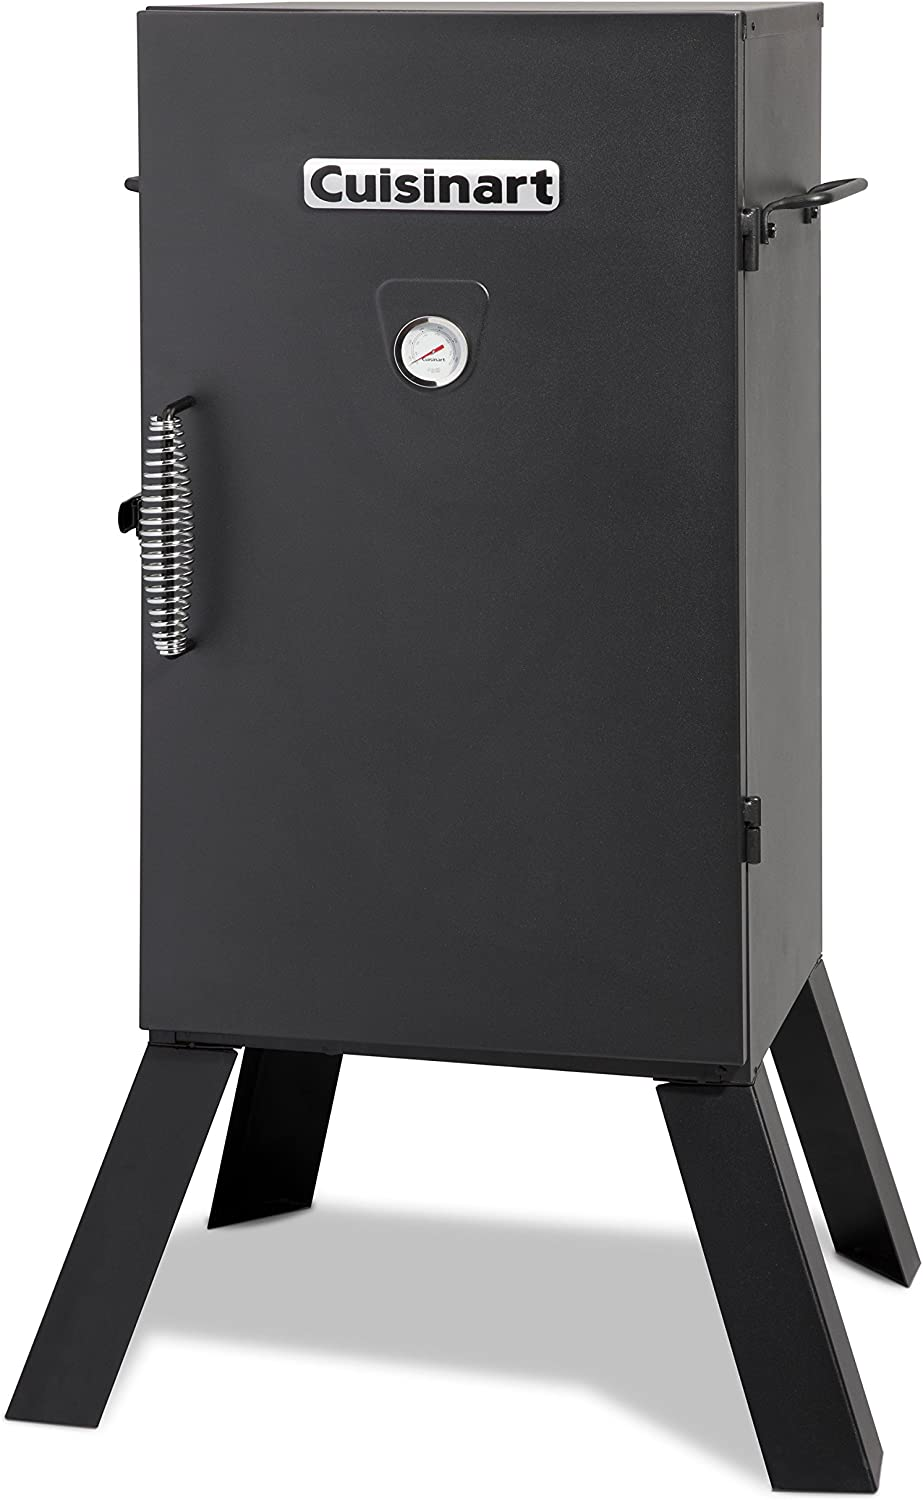 CUISINART COS-330 Smoker review